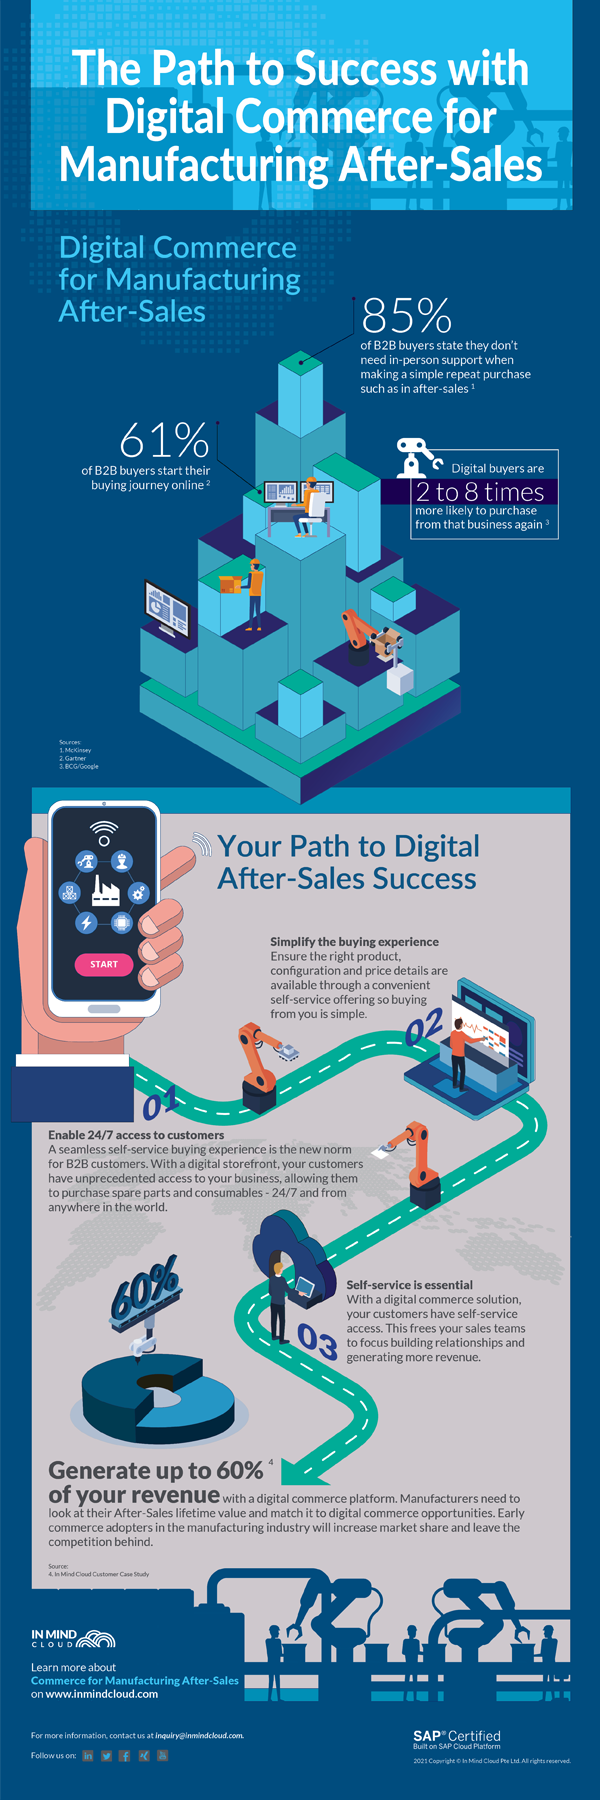 The Path to Success with Digital Commerce for Manufacturing After-Sales_infographic